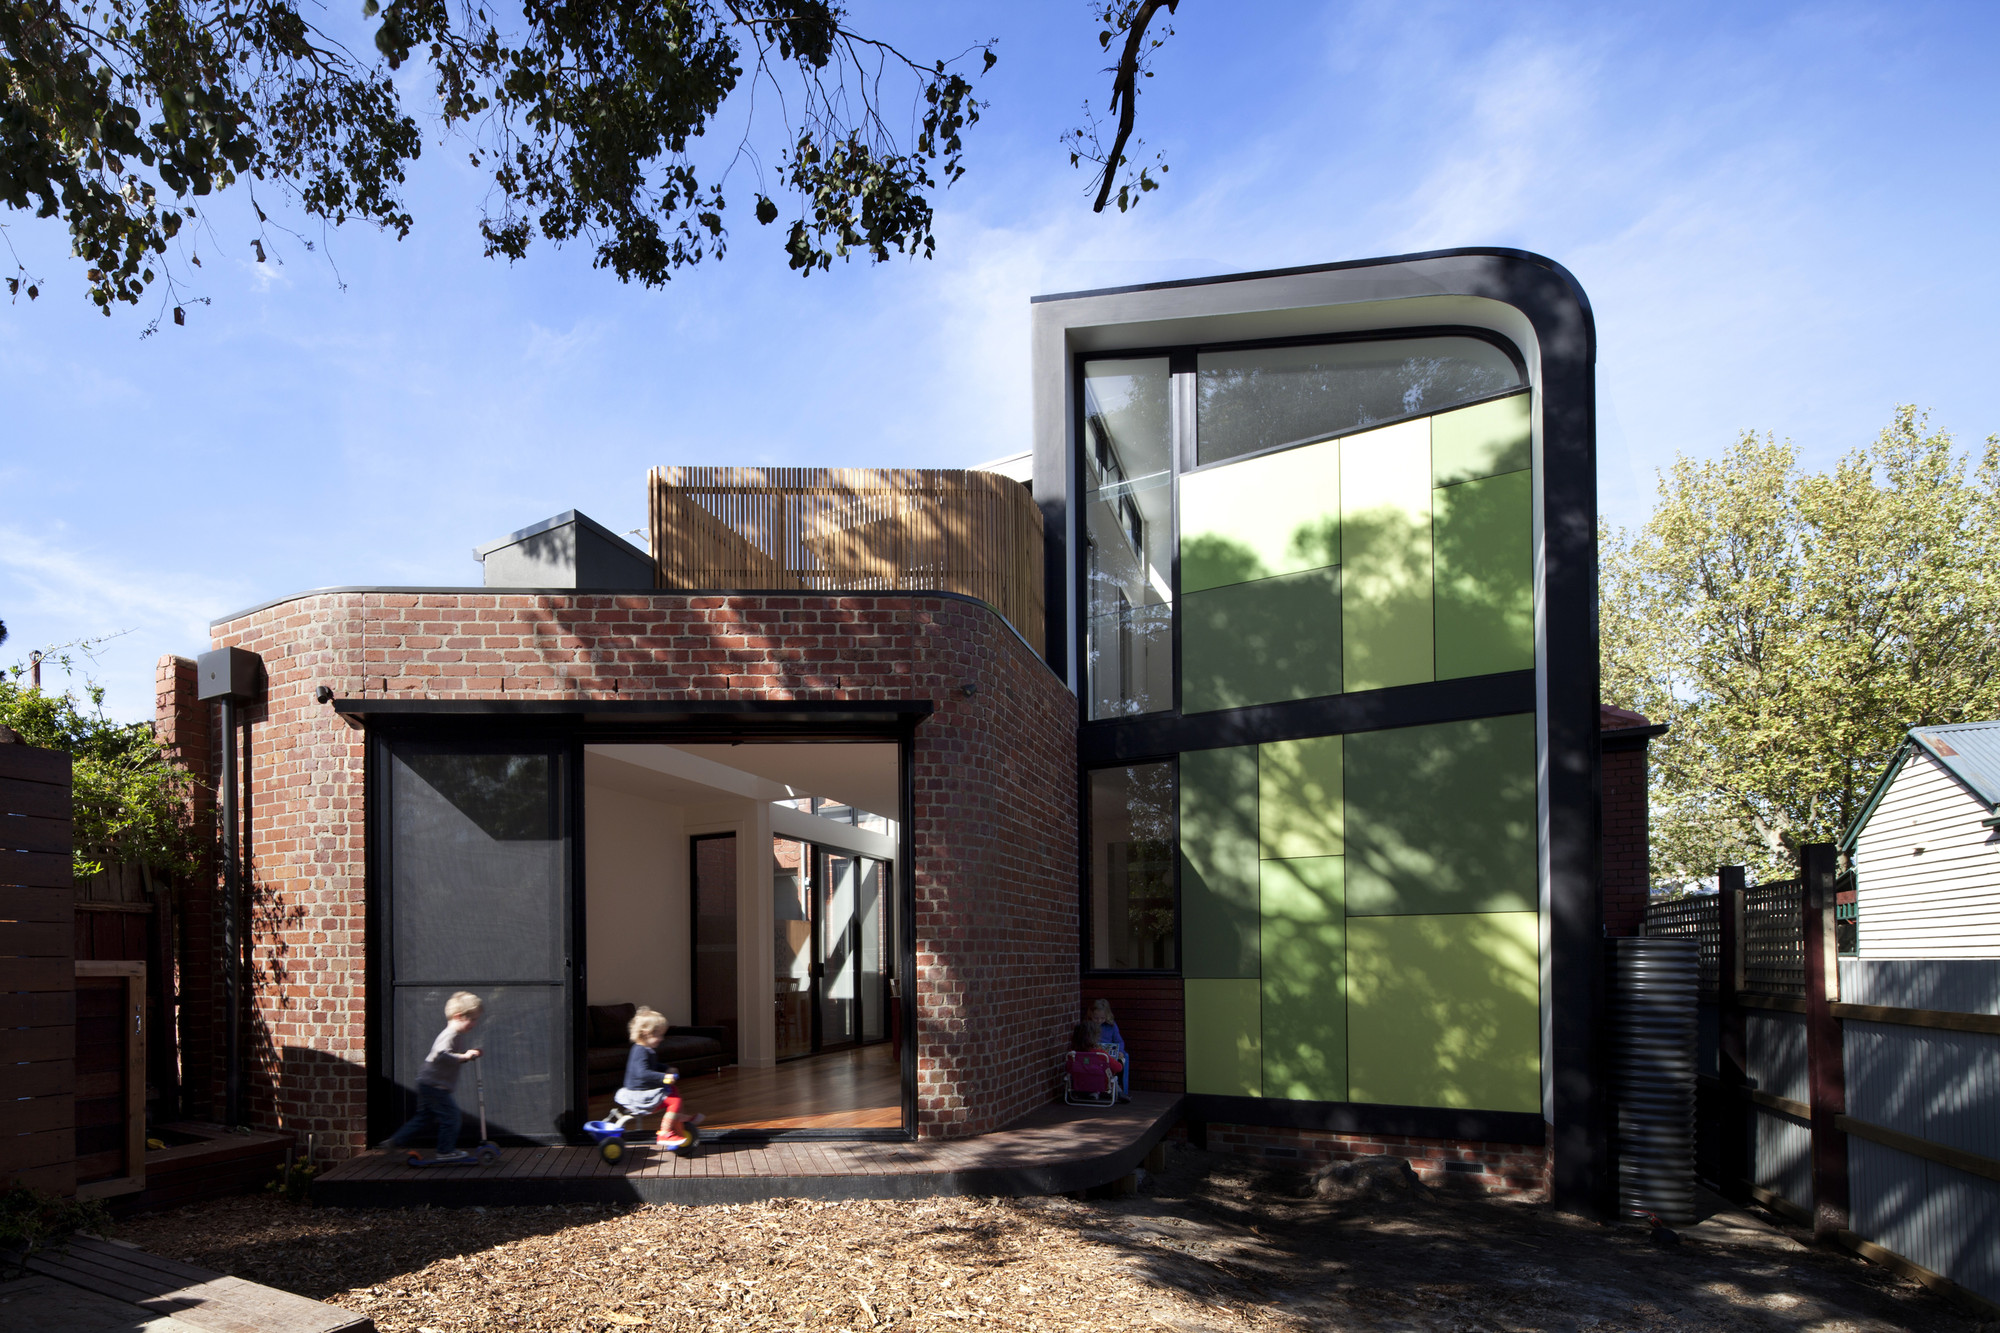 Abbotsford residence chan architecture archdaily - Altbau umbau ideen ...